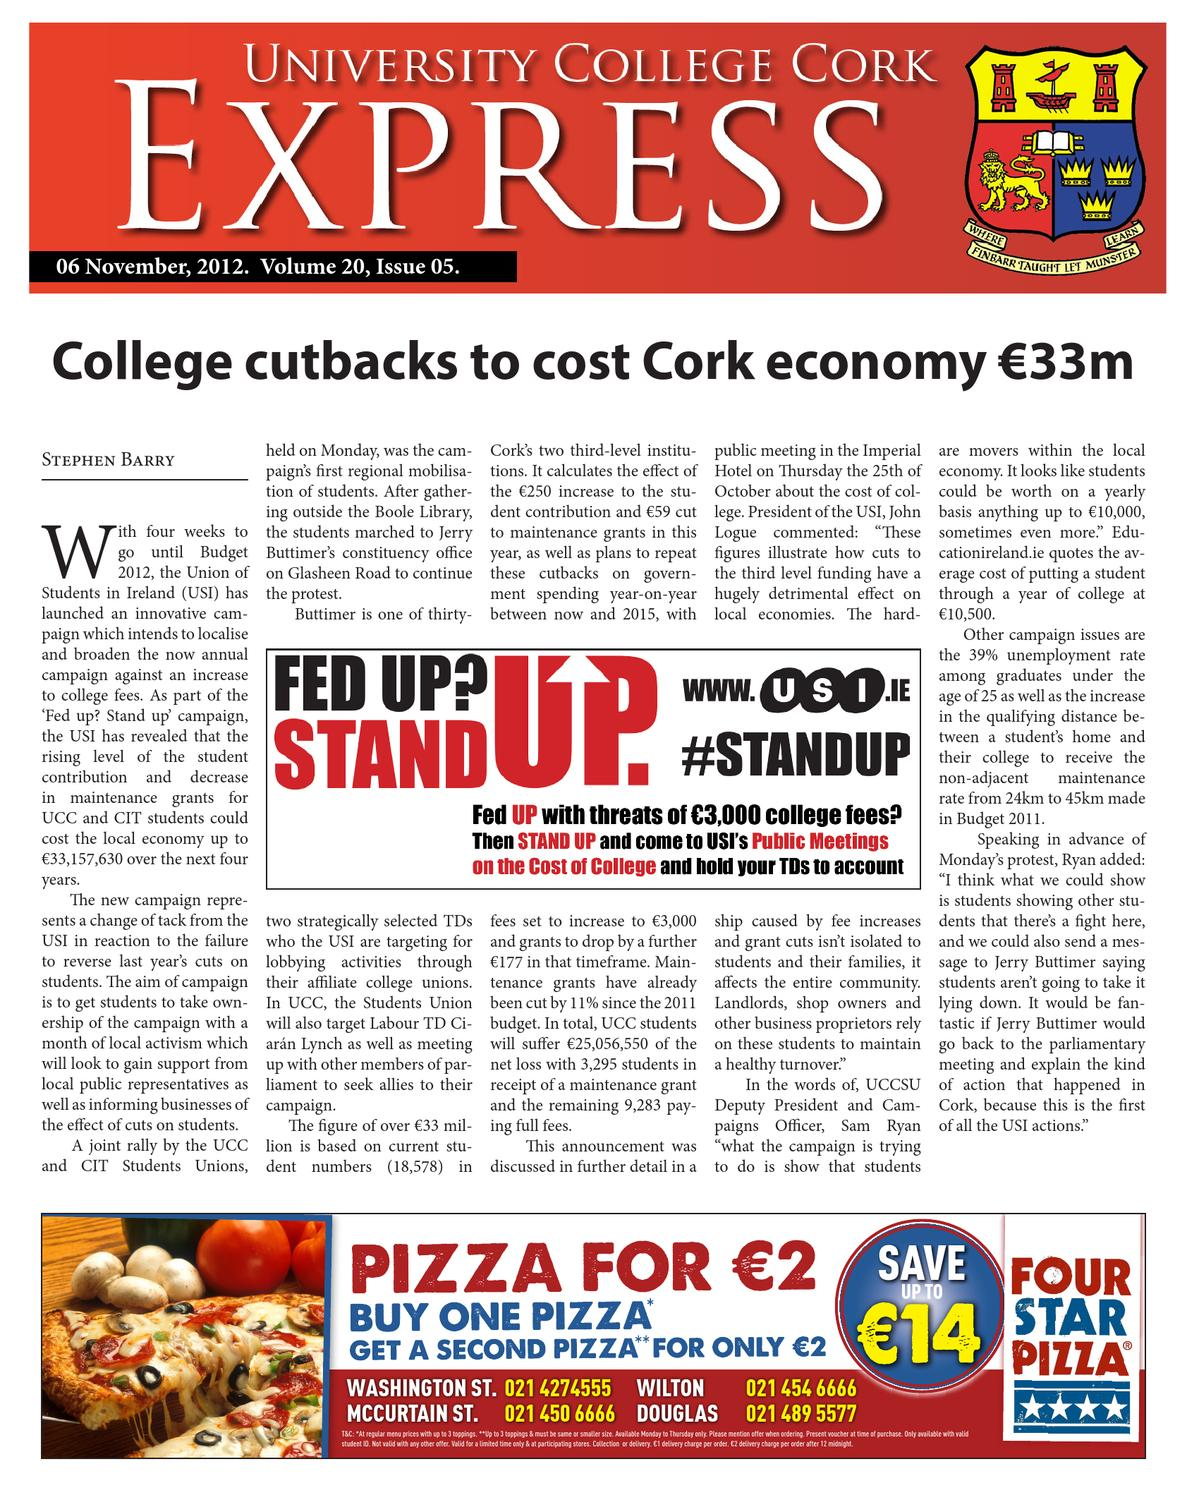 UCC Express Vol 20 Issue 4 by University Express - issuu f24540f7c